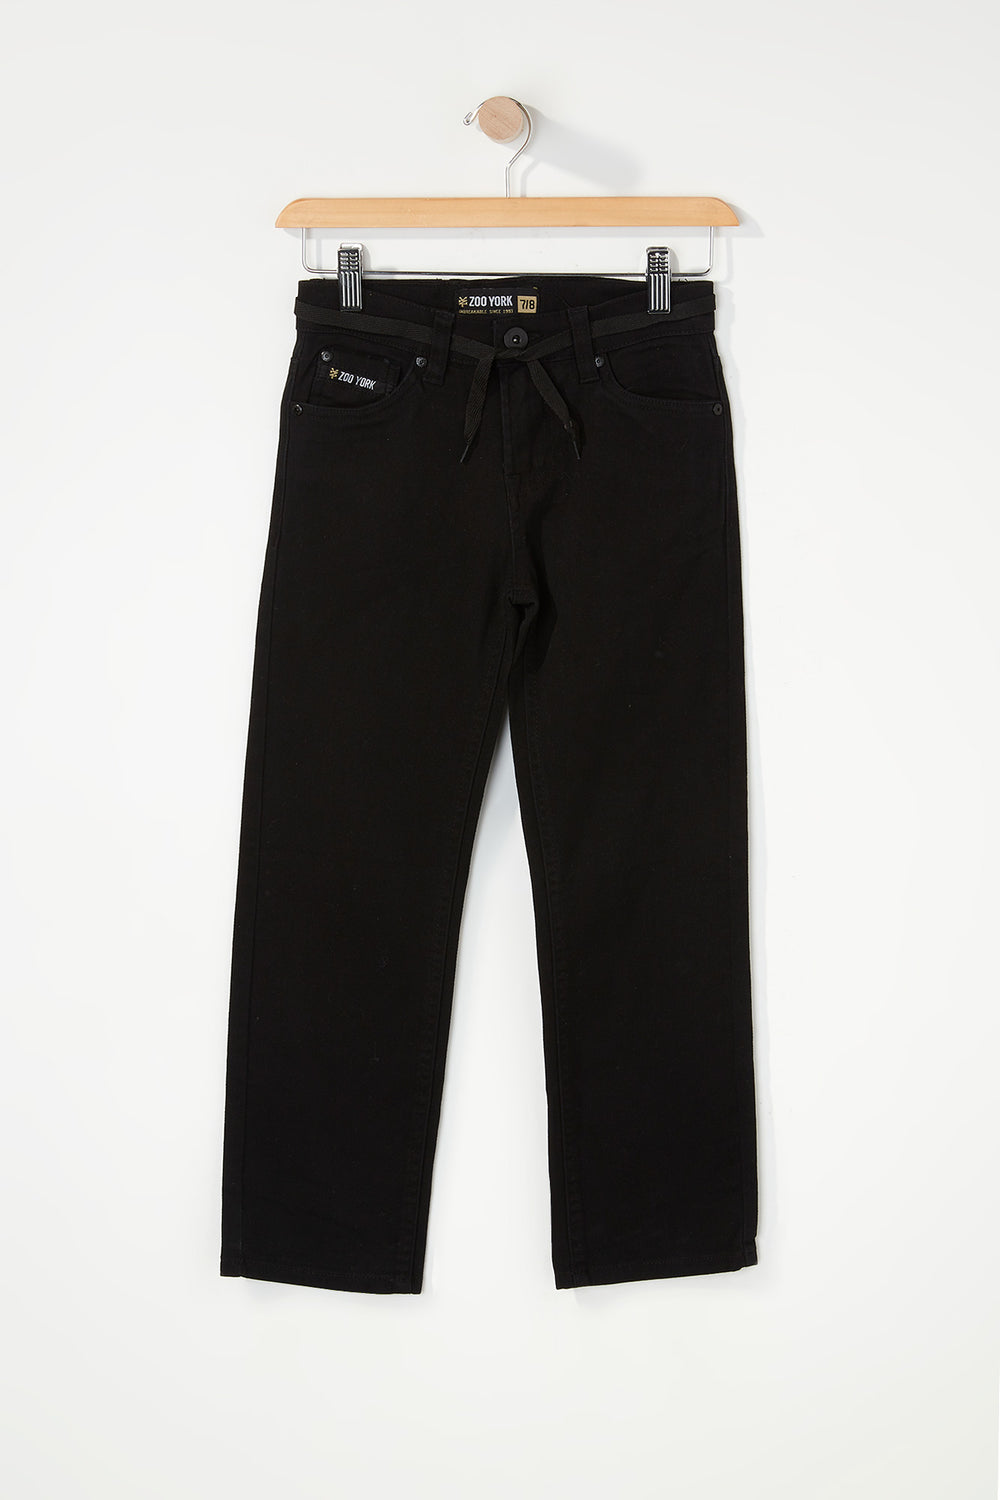 Zoo York Boys Stretch Slim Jeans Black